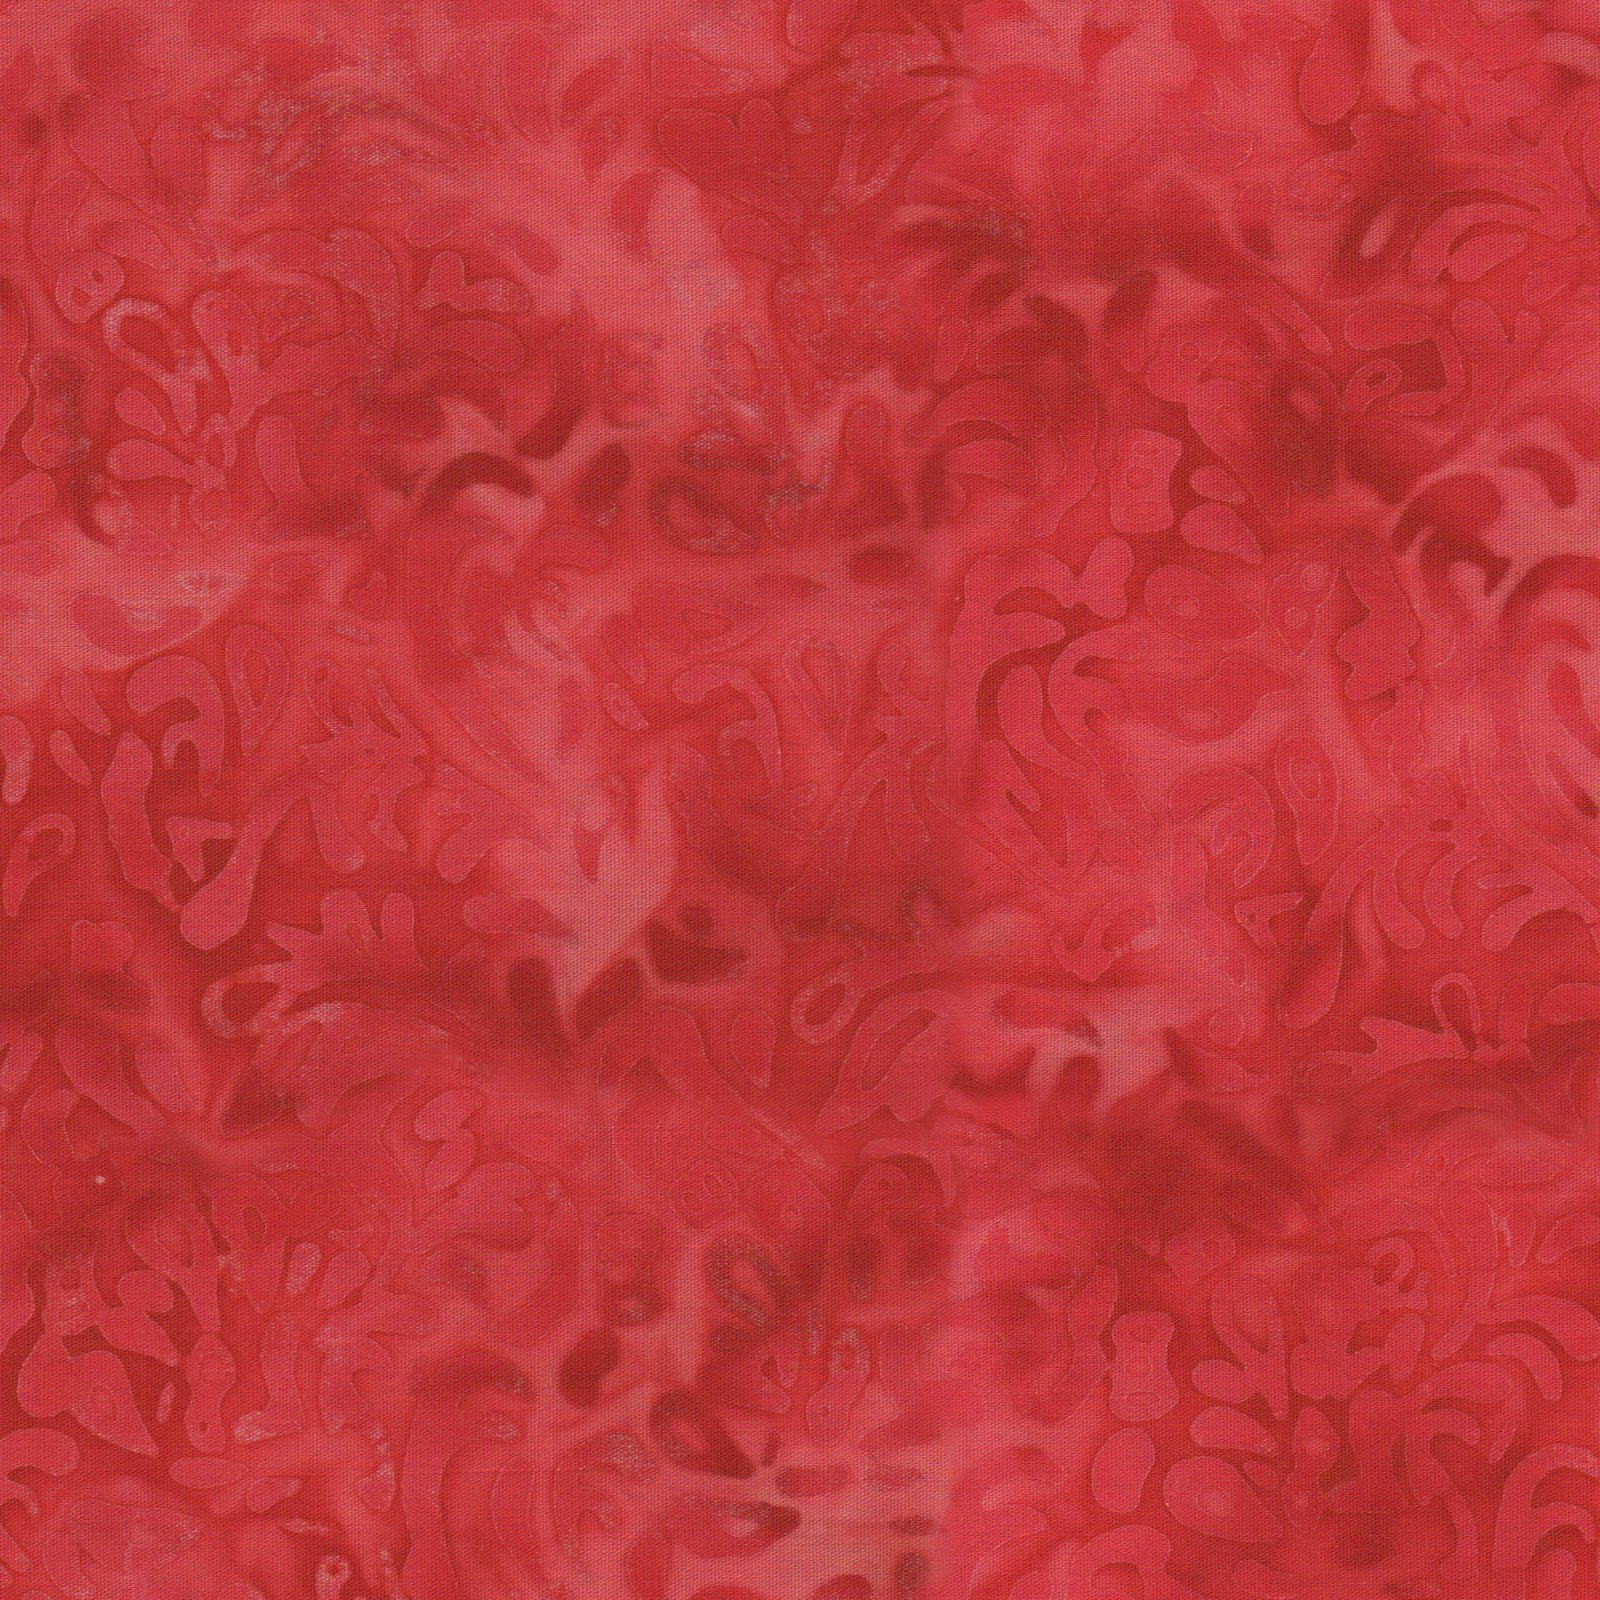 EESC-B52 R - COLOR THERAPY BATIKS BY MAYWOOD STUDIO NEW SCROLL RED - ARRIVING DECEMBER 2020